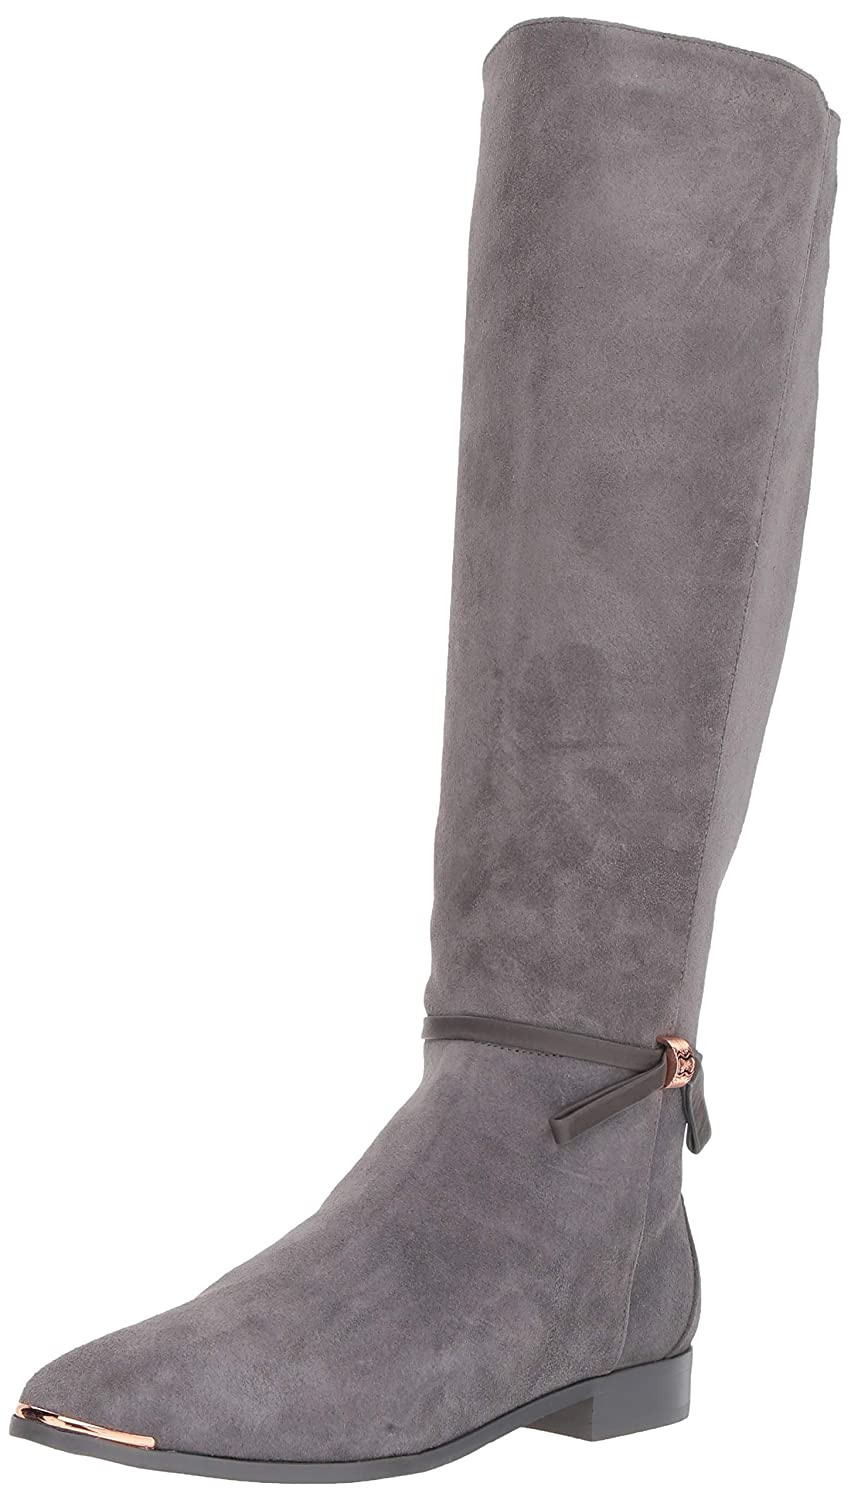 fdb16d85062ed Amazon.com  Ted Baker Women s Lykla Over The Over The Knee Boot  Shoes